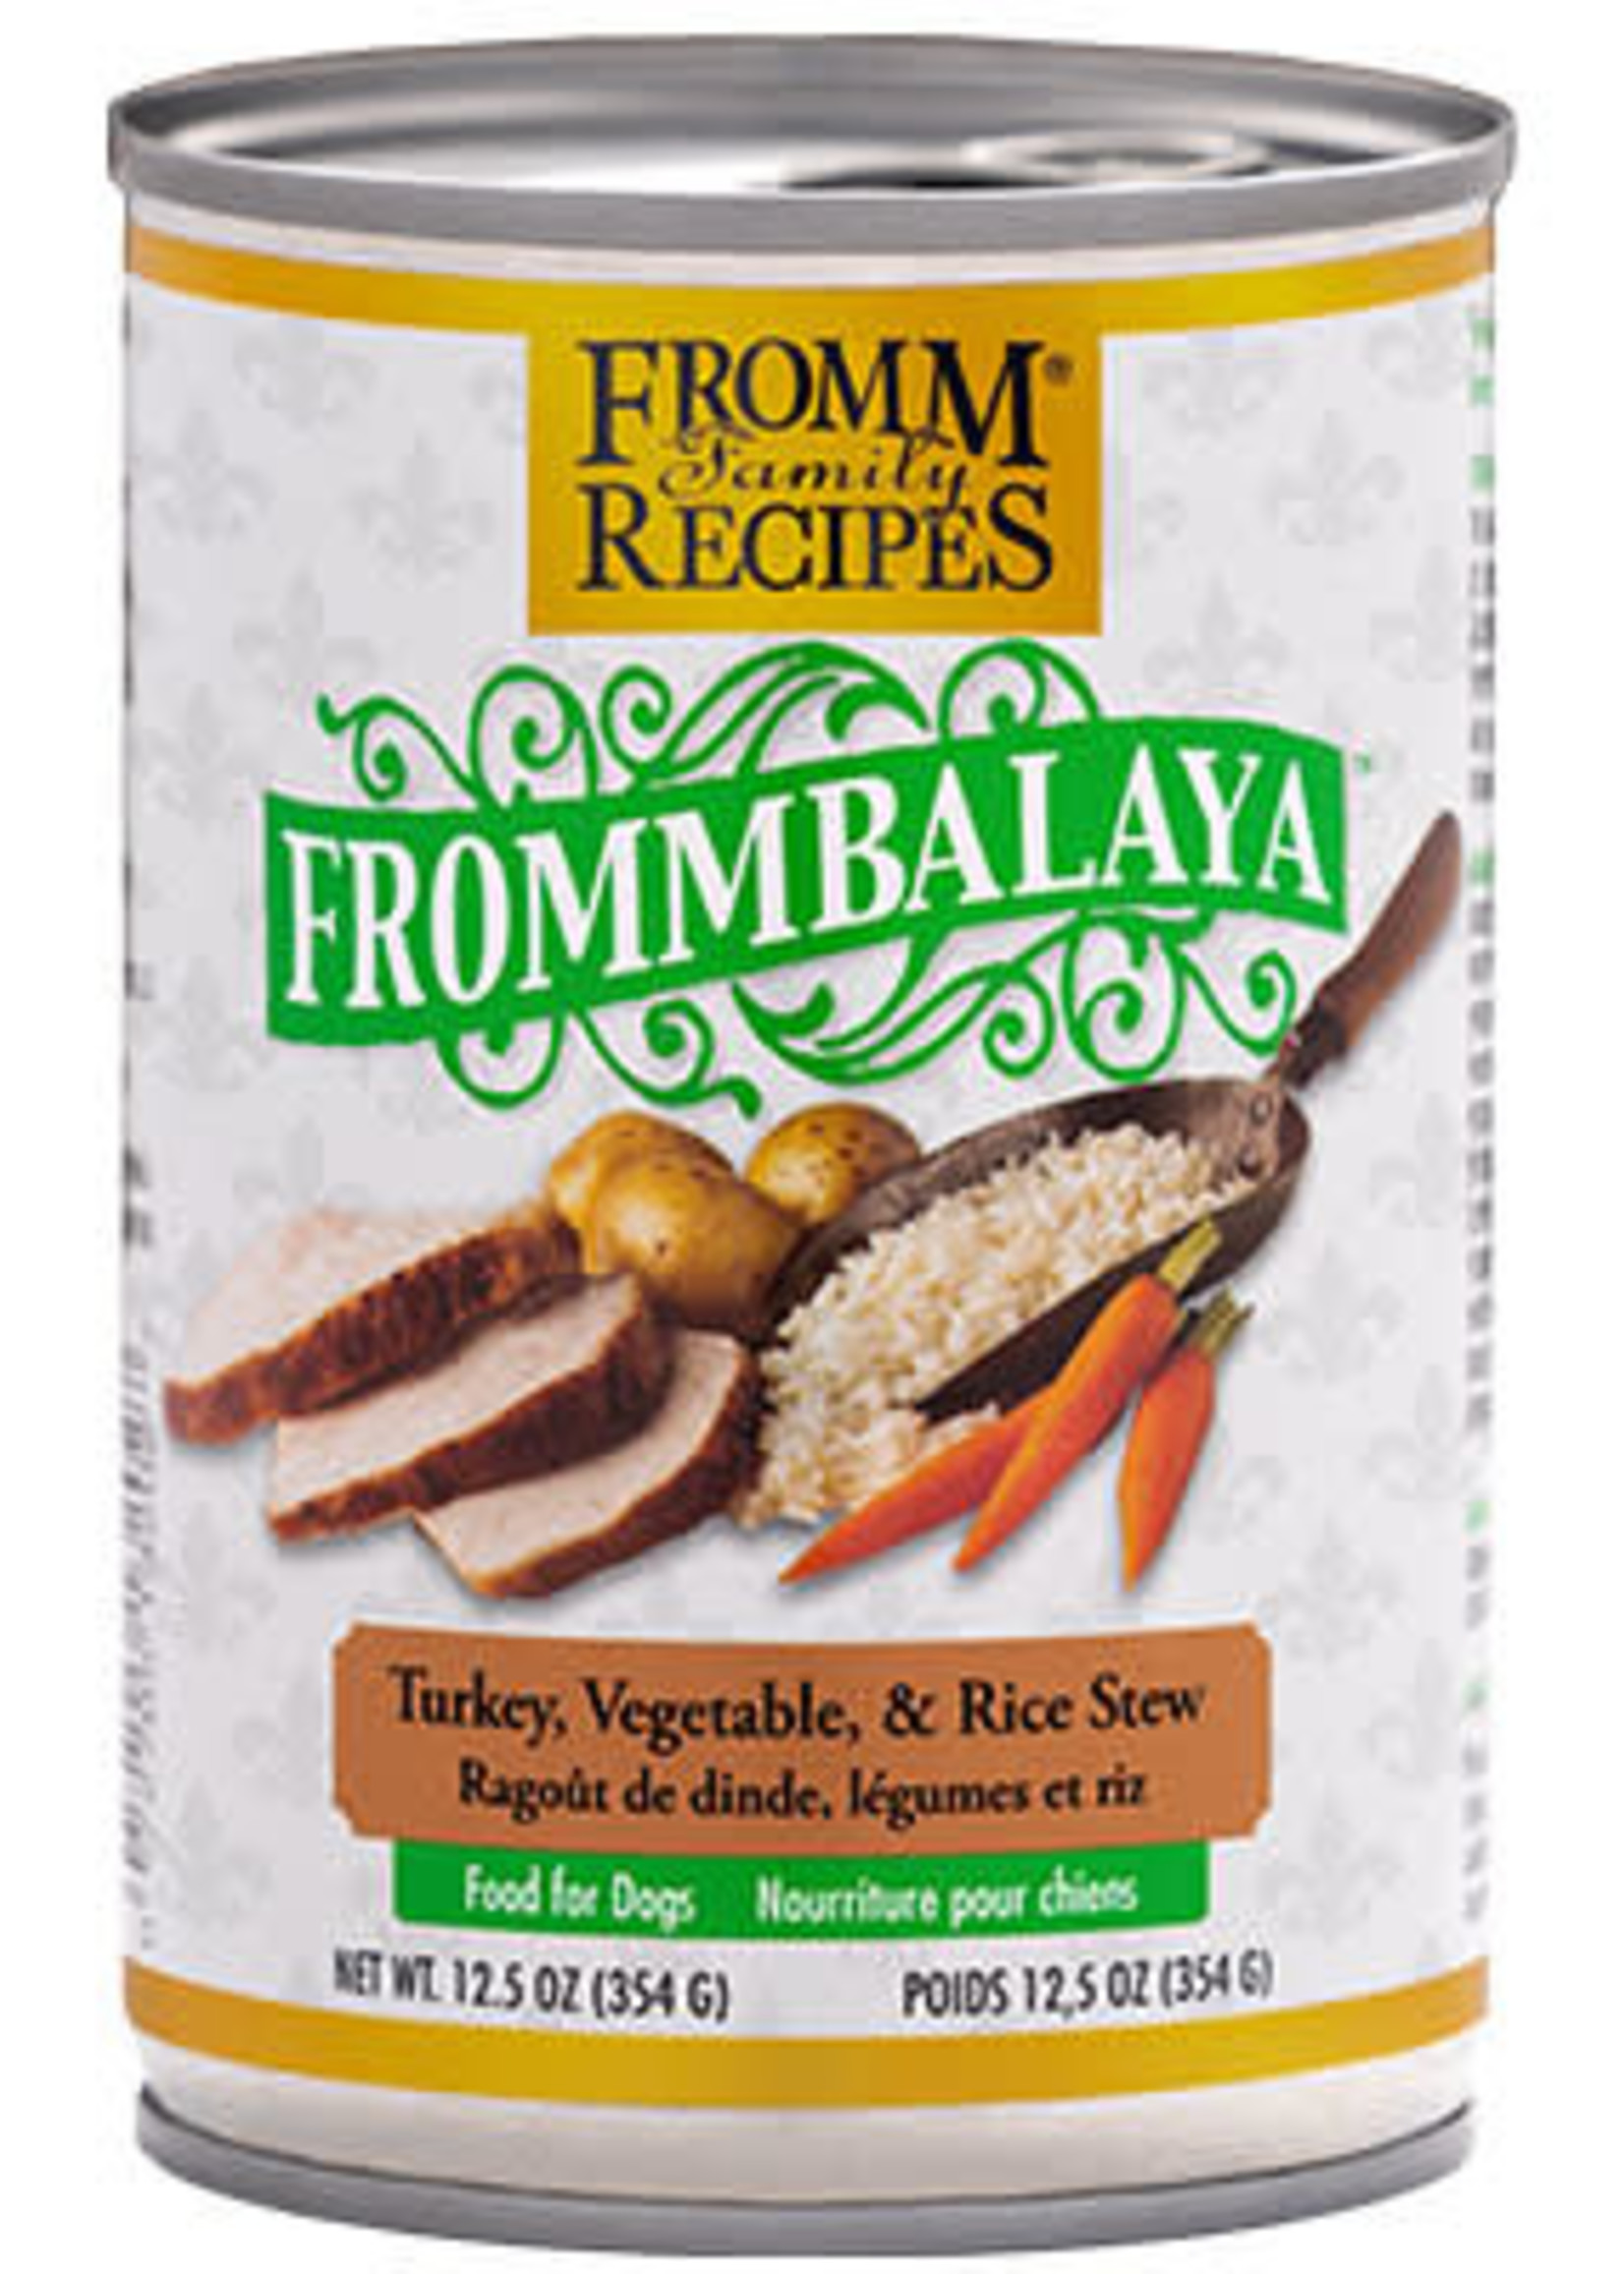 Fromm FrommBALAYA Turkey, Vegetable, & Rice Stew 12.5oz